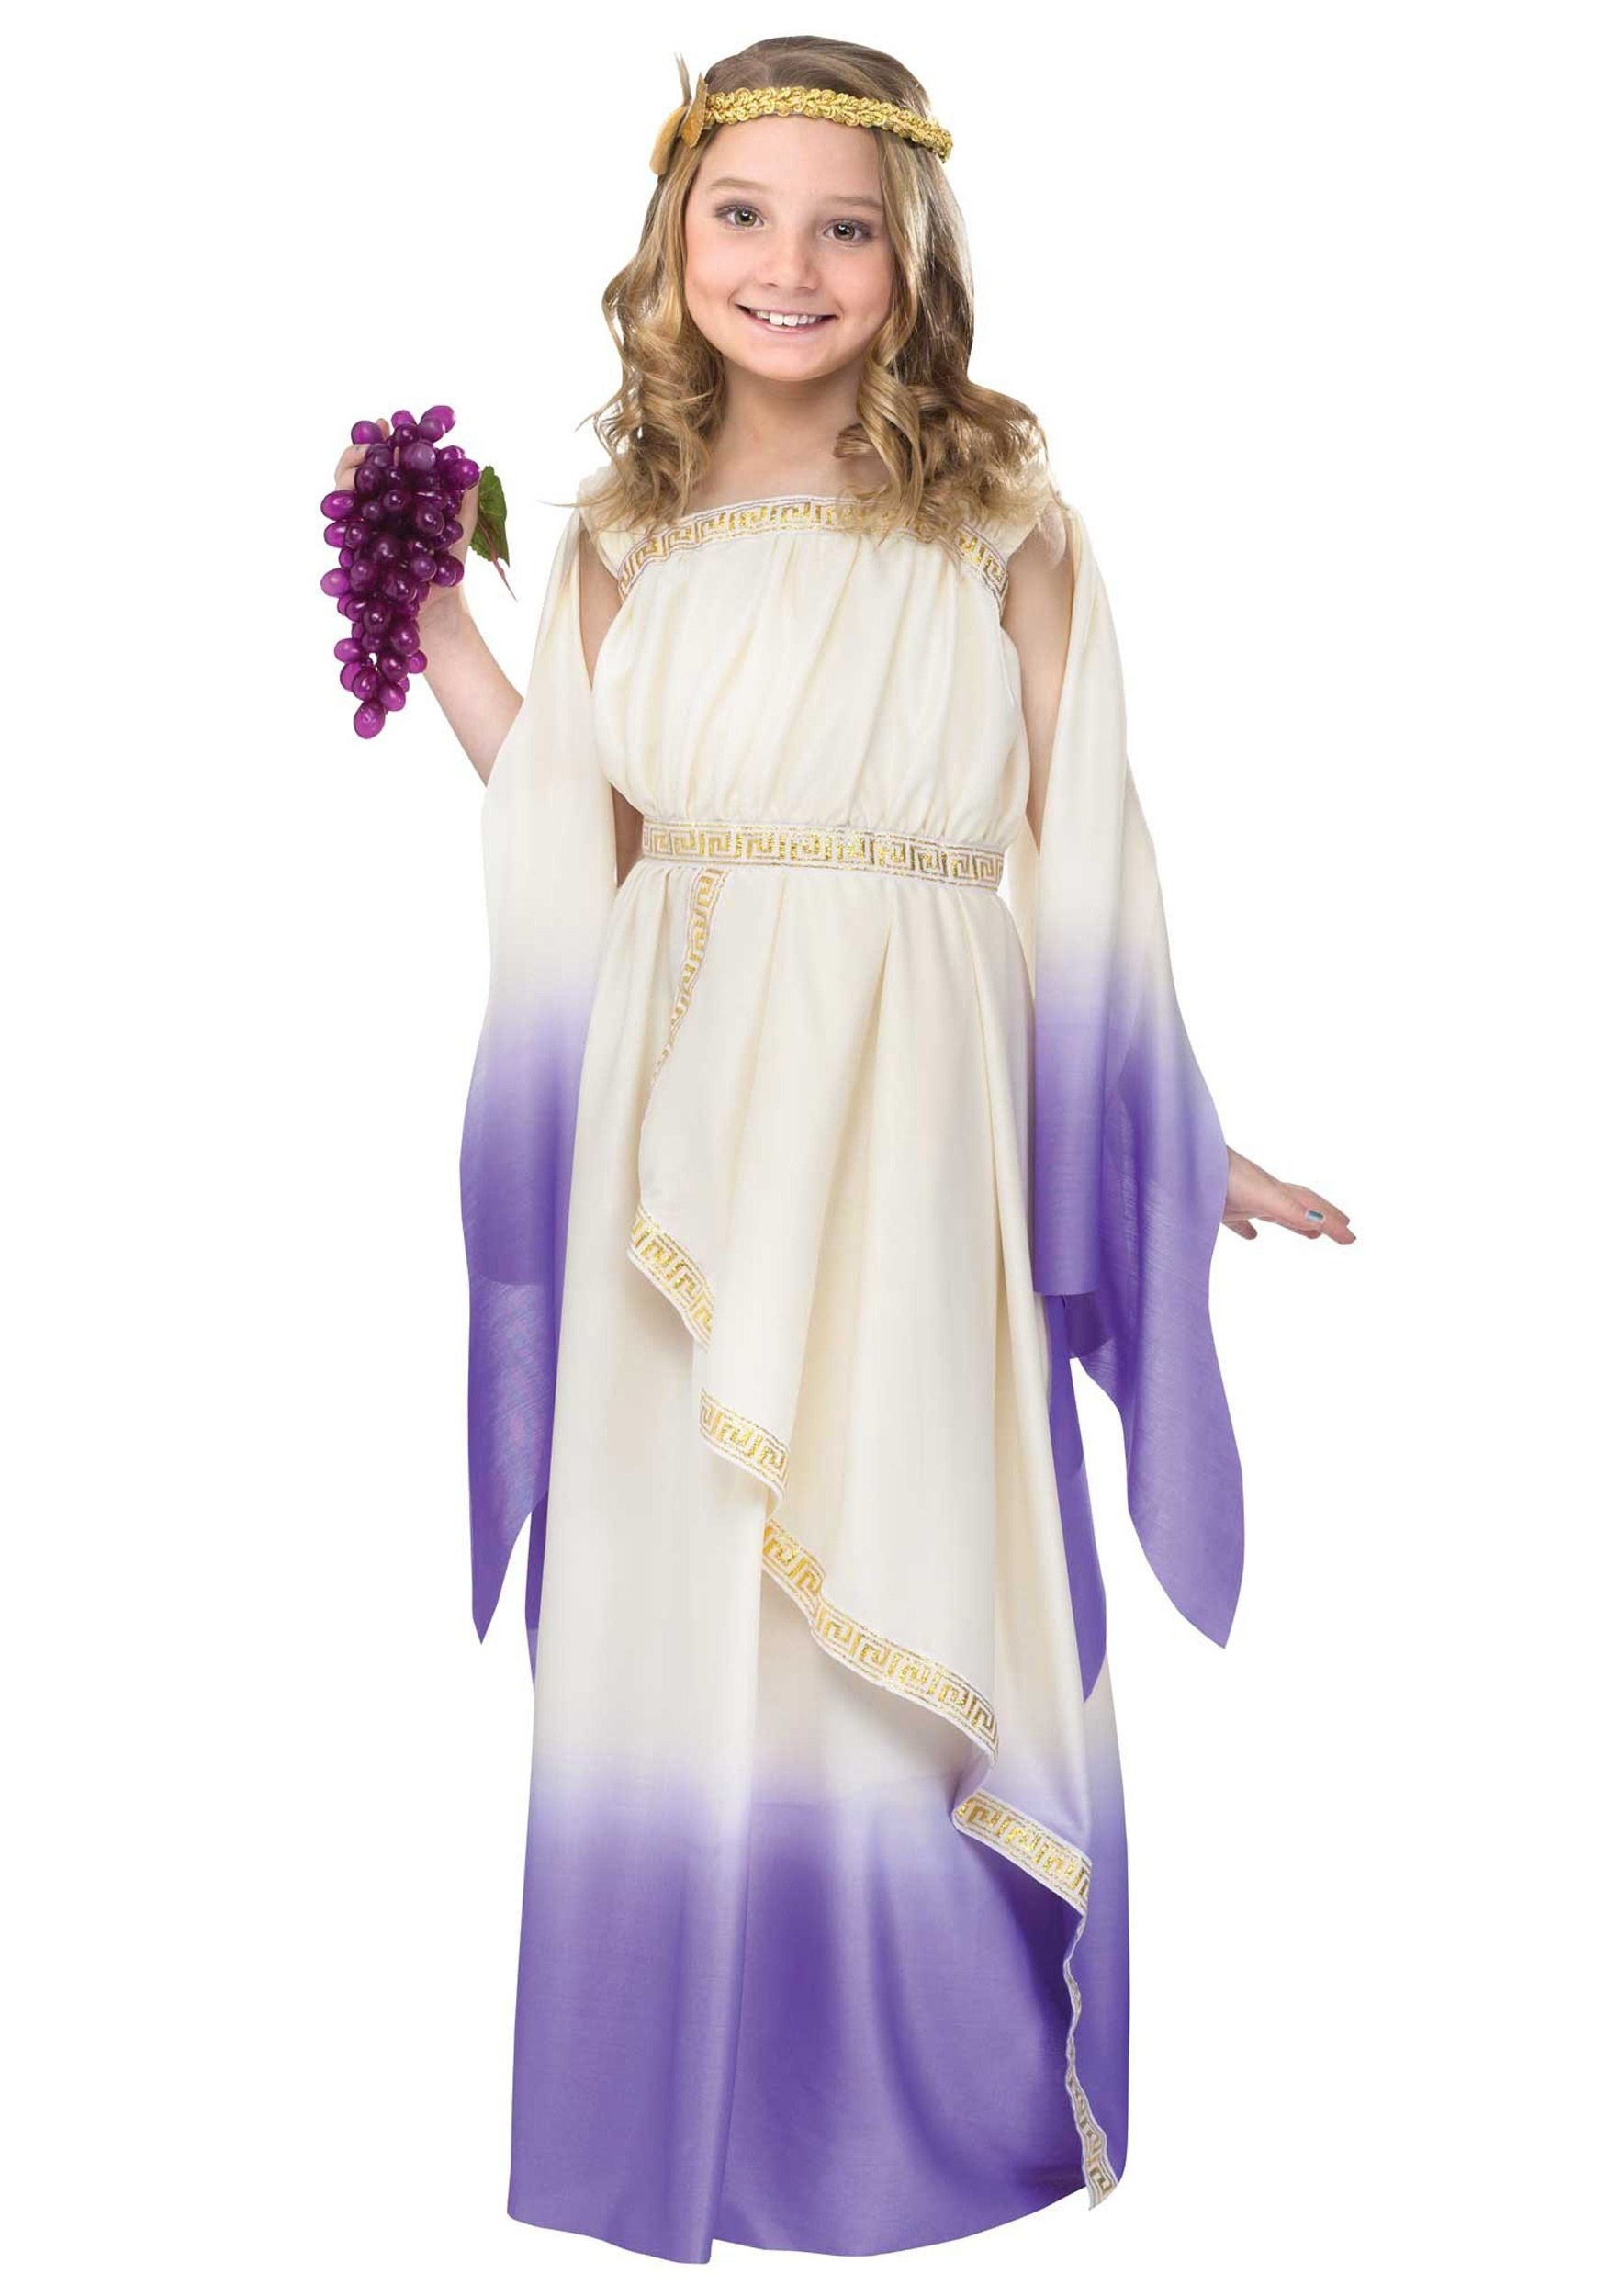 Girls Purple Goddess Costume | Goddess costume, Halloween costumes ...